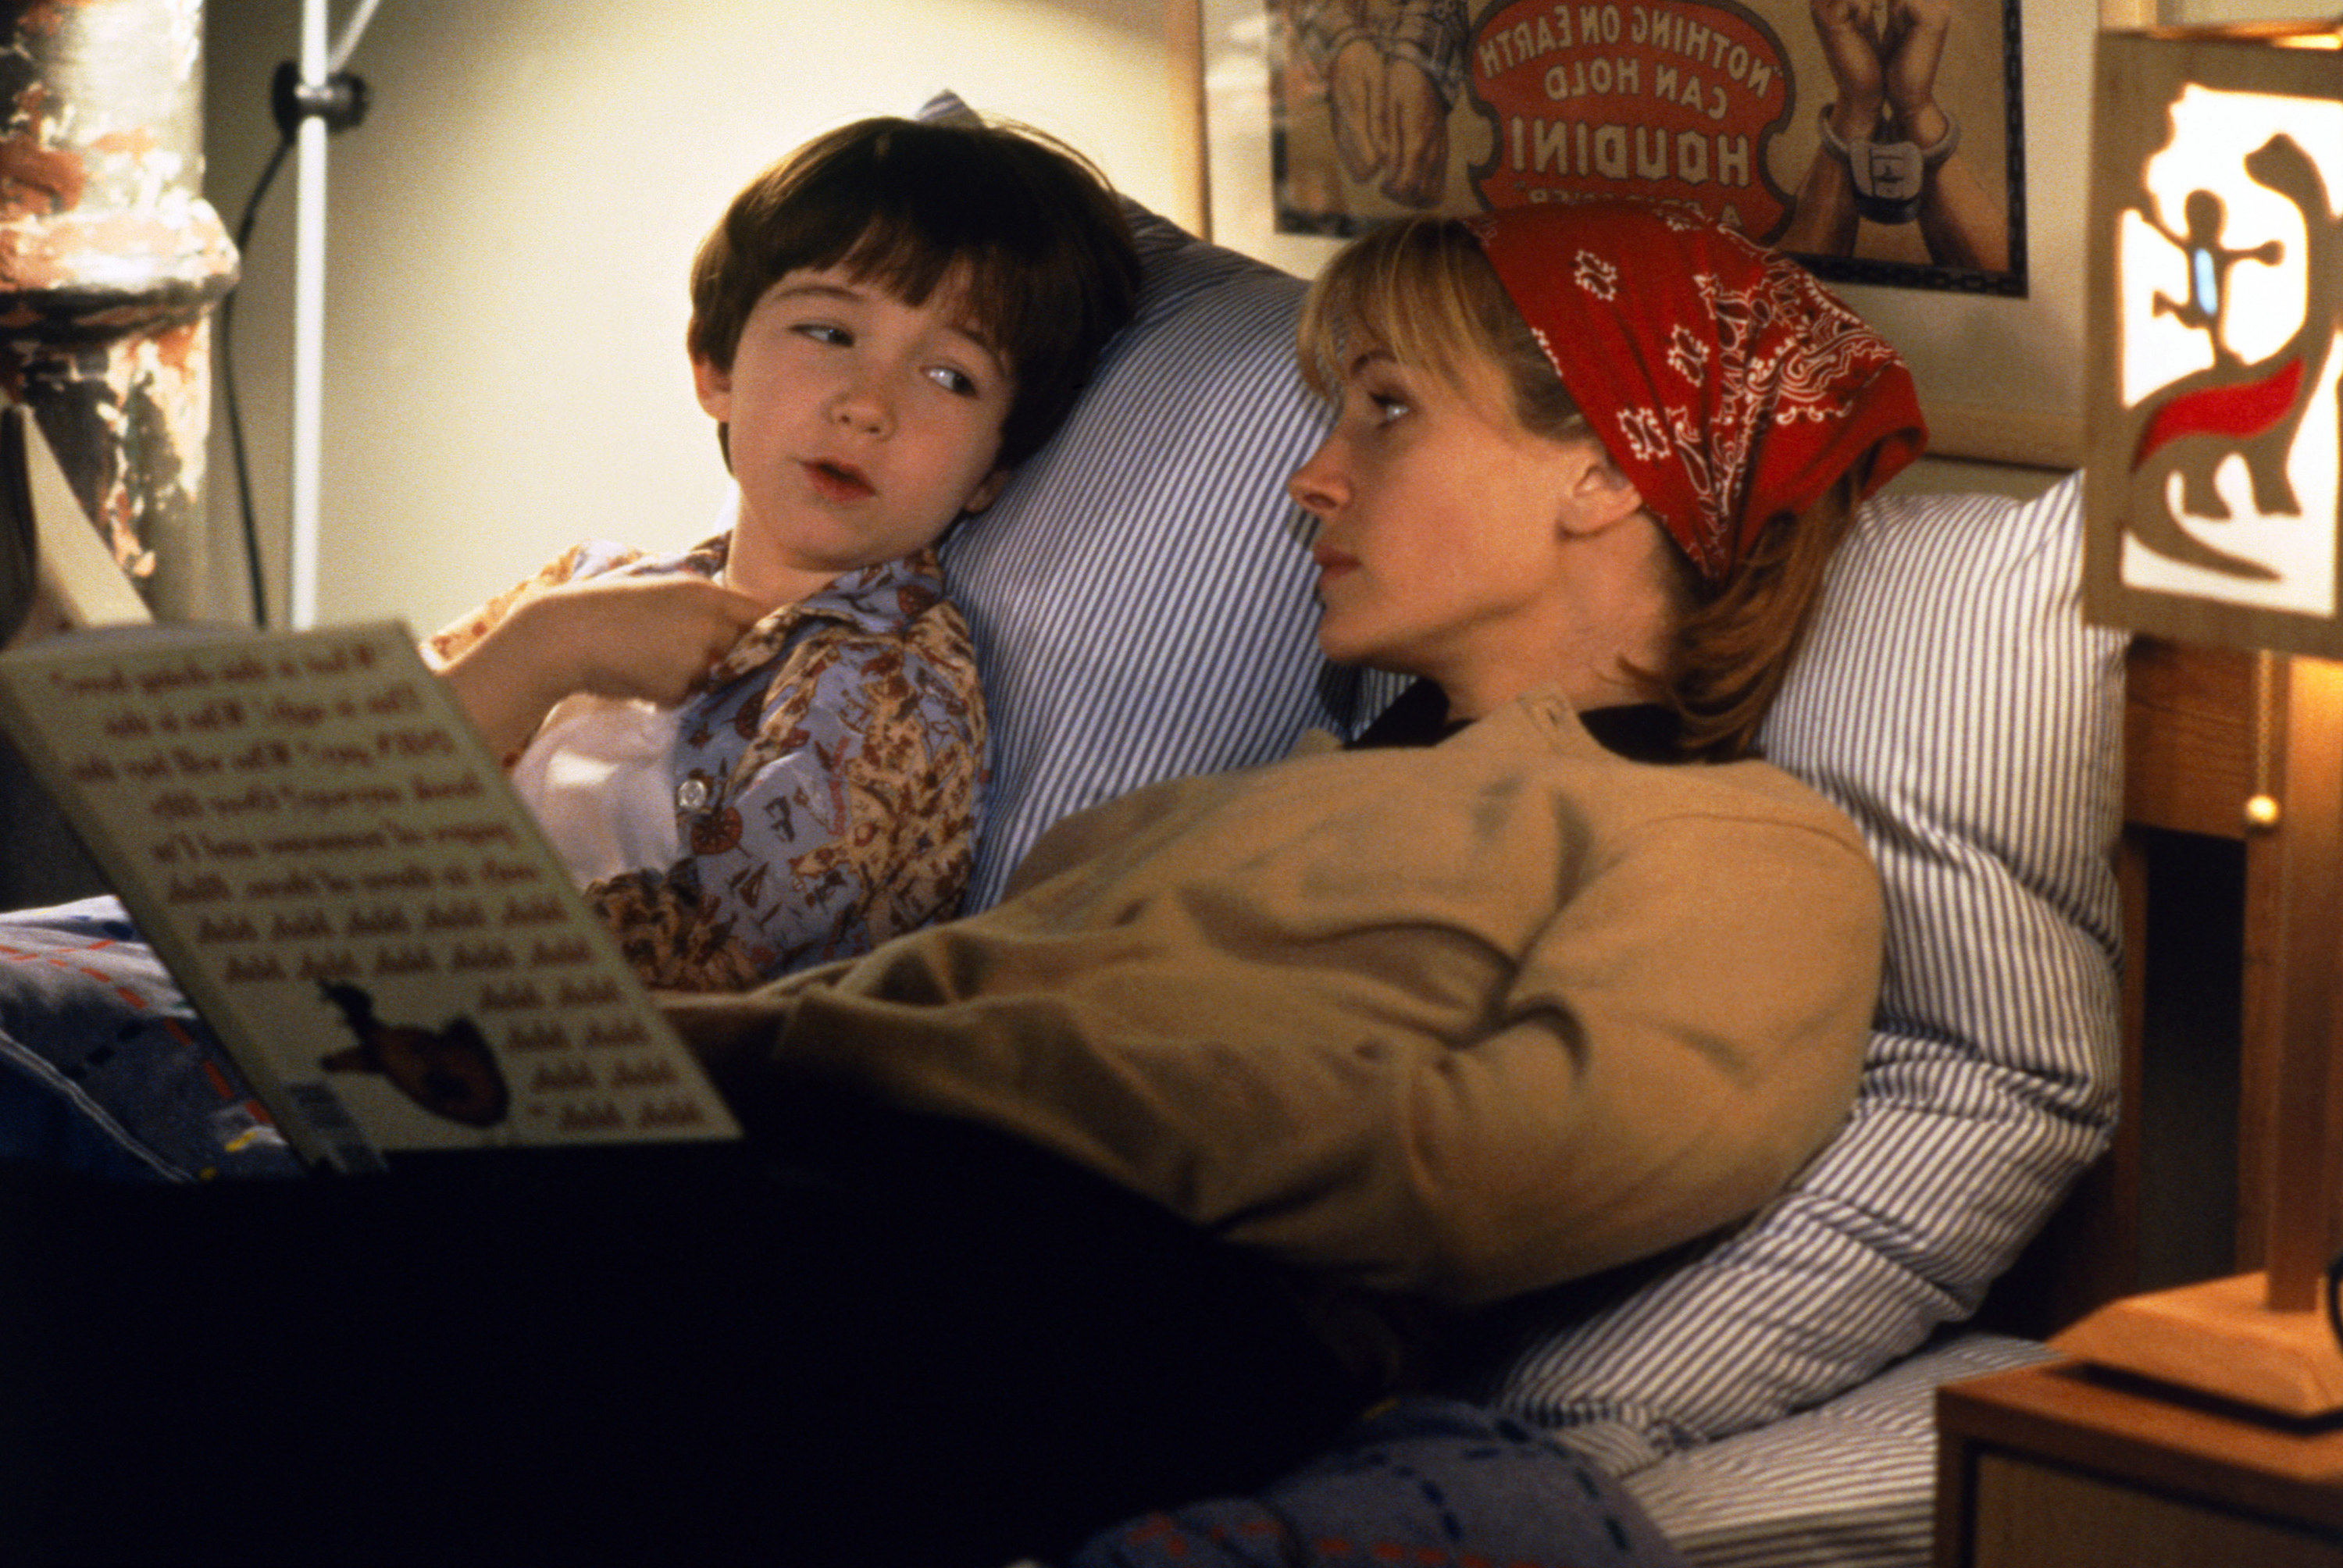 Julia Roberts in character reads a book to her fictional child in bed